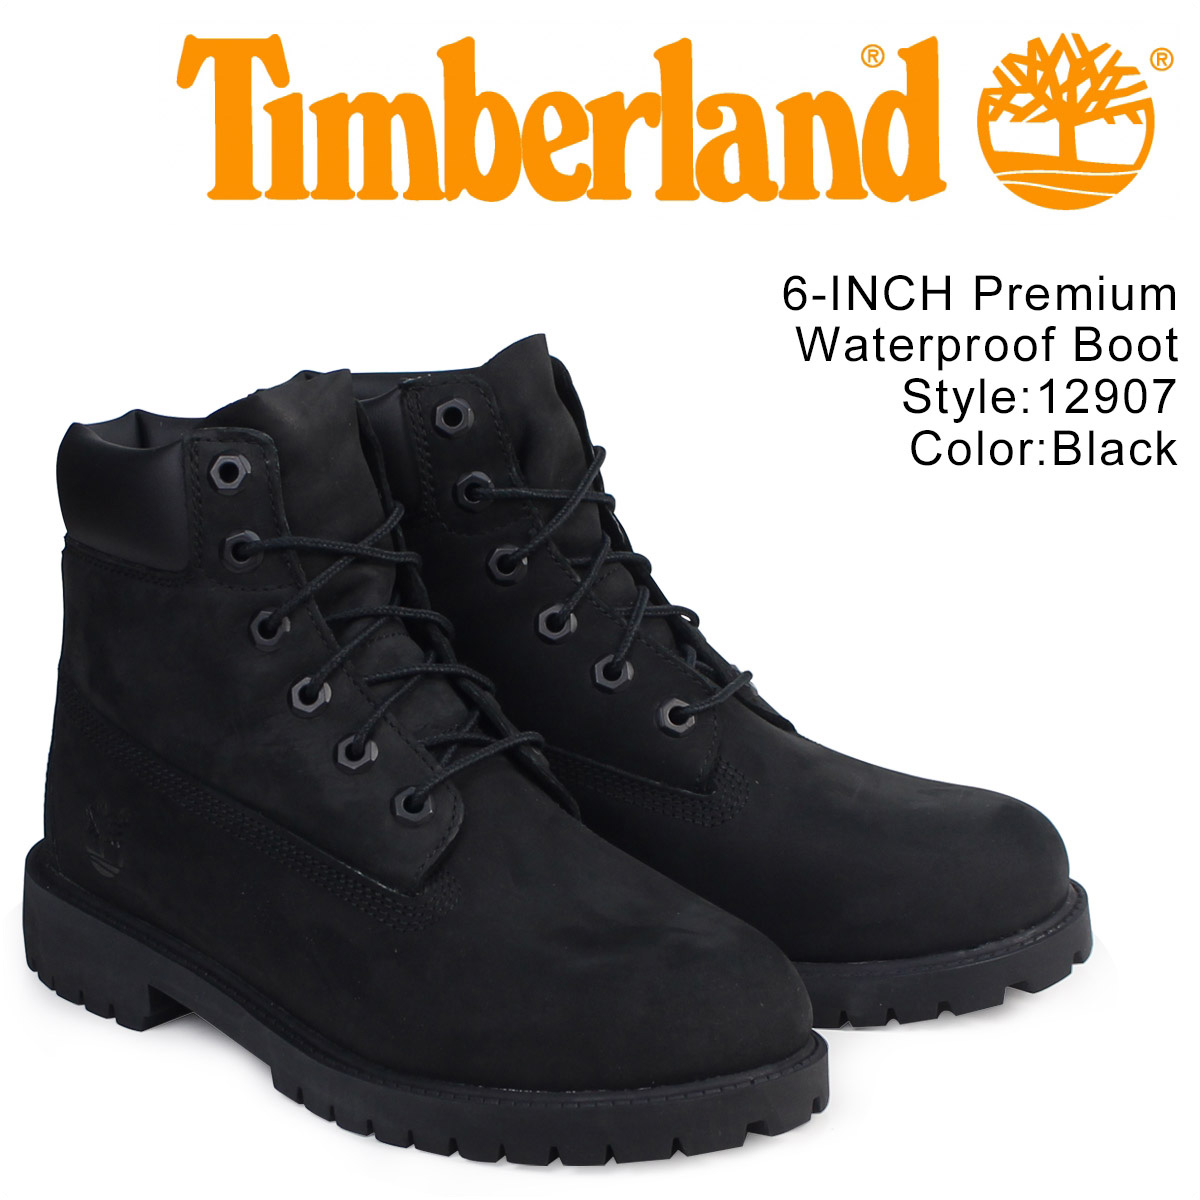 Timberland Black Friday Sales 2021 – 80% OFF on Shoes, Clothing